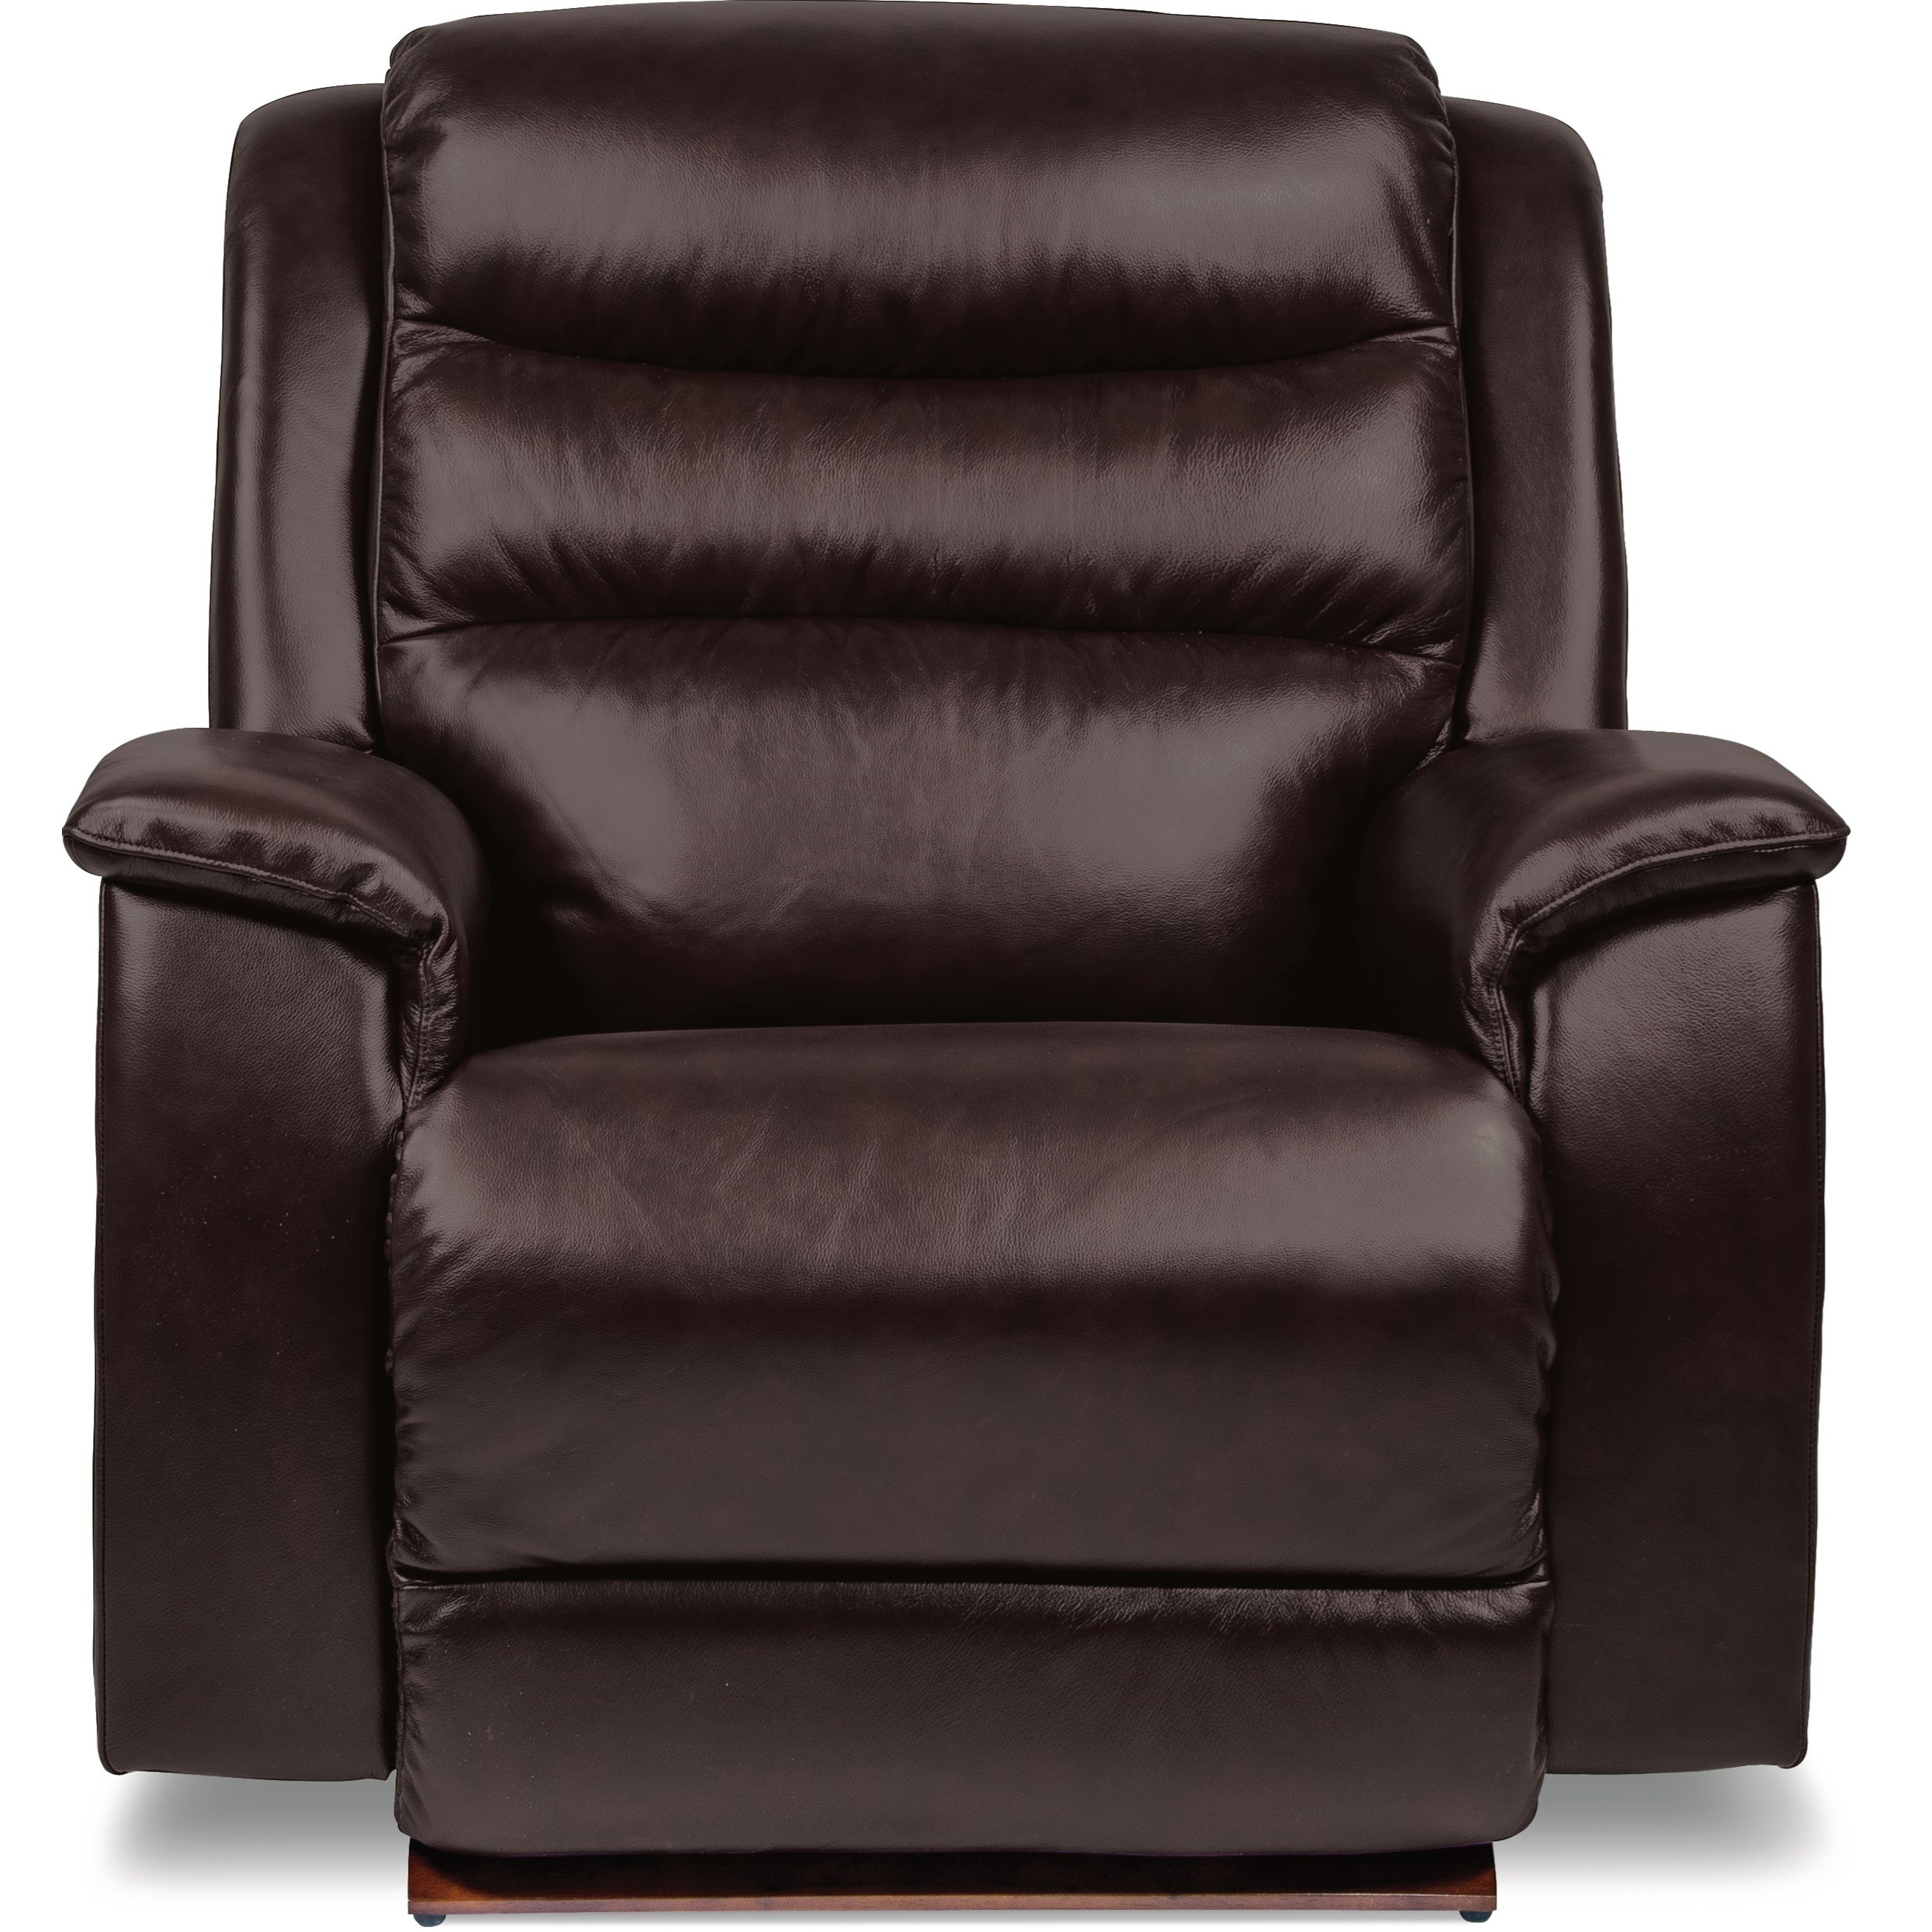 Redwood Rocking Recliner by La-Z-Boy at Godby Home Furnishings